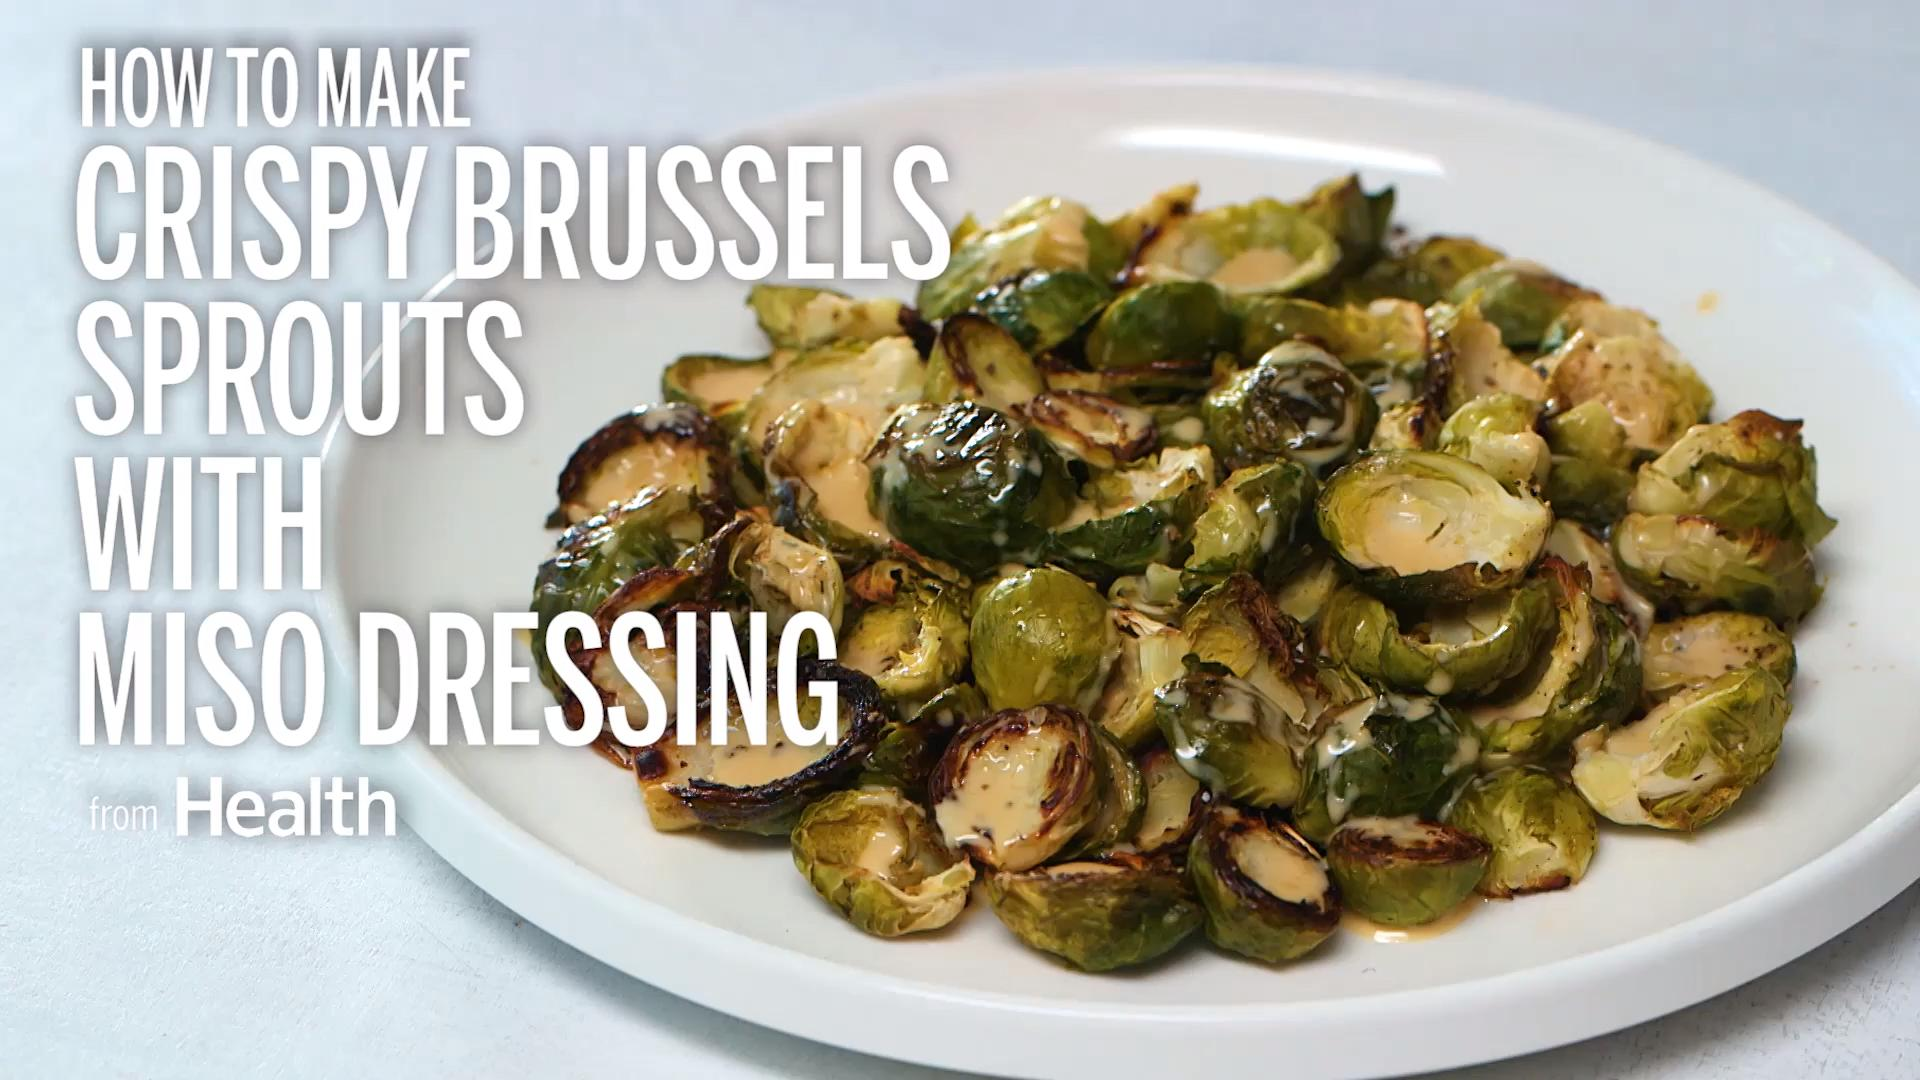 Crispy Brussels Sprouts With Miso Dressing